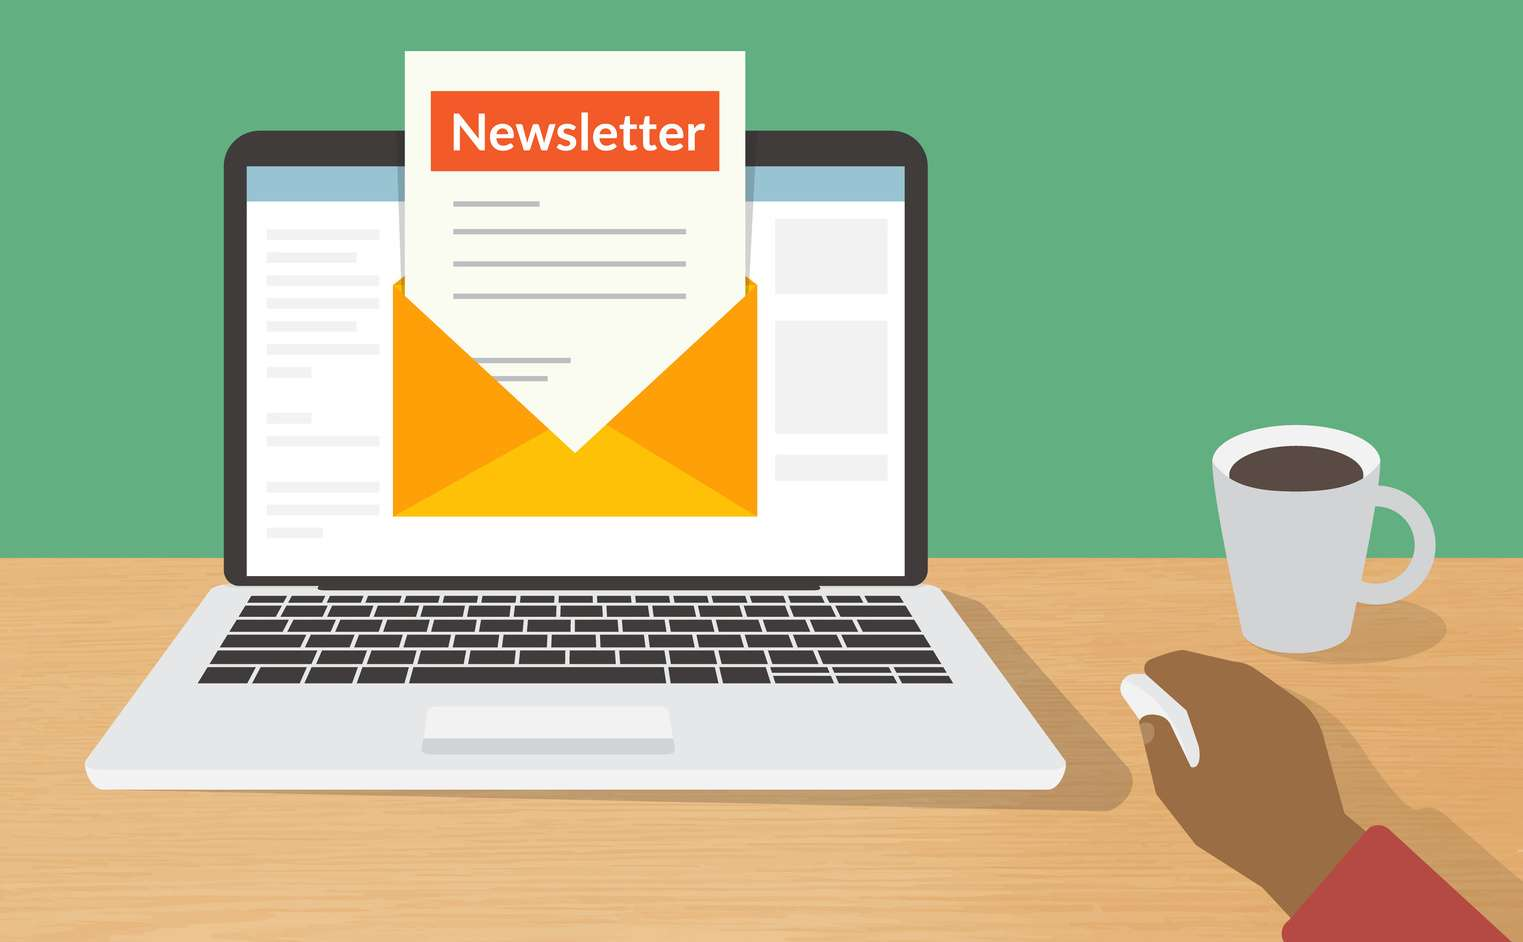 Pianificare una strategia marketing con lo strumento di newsletter